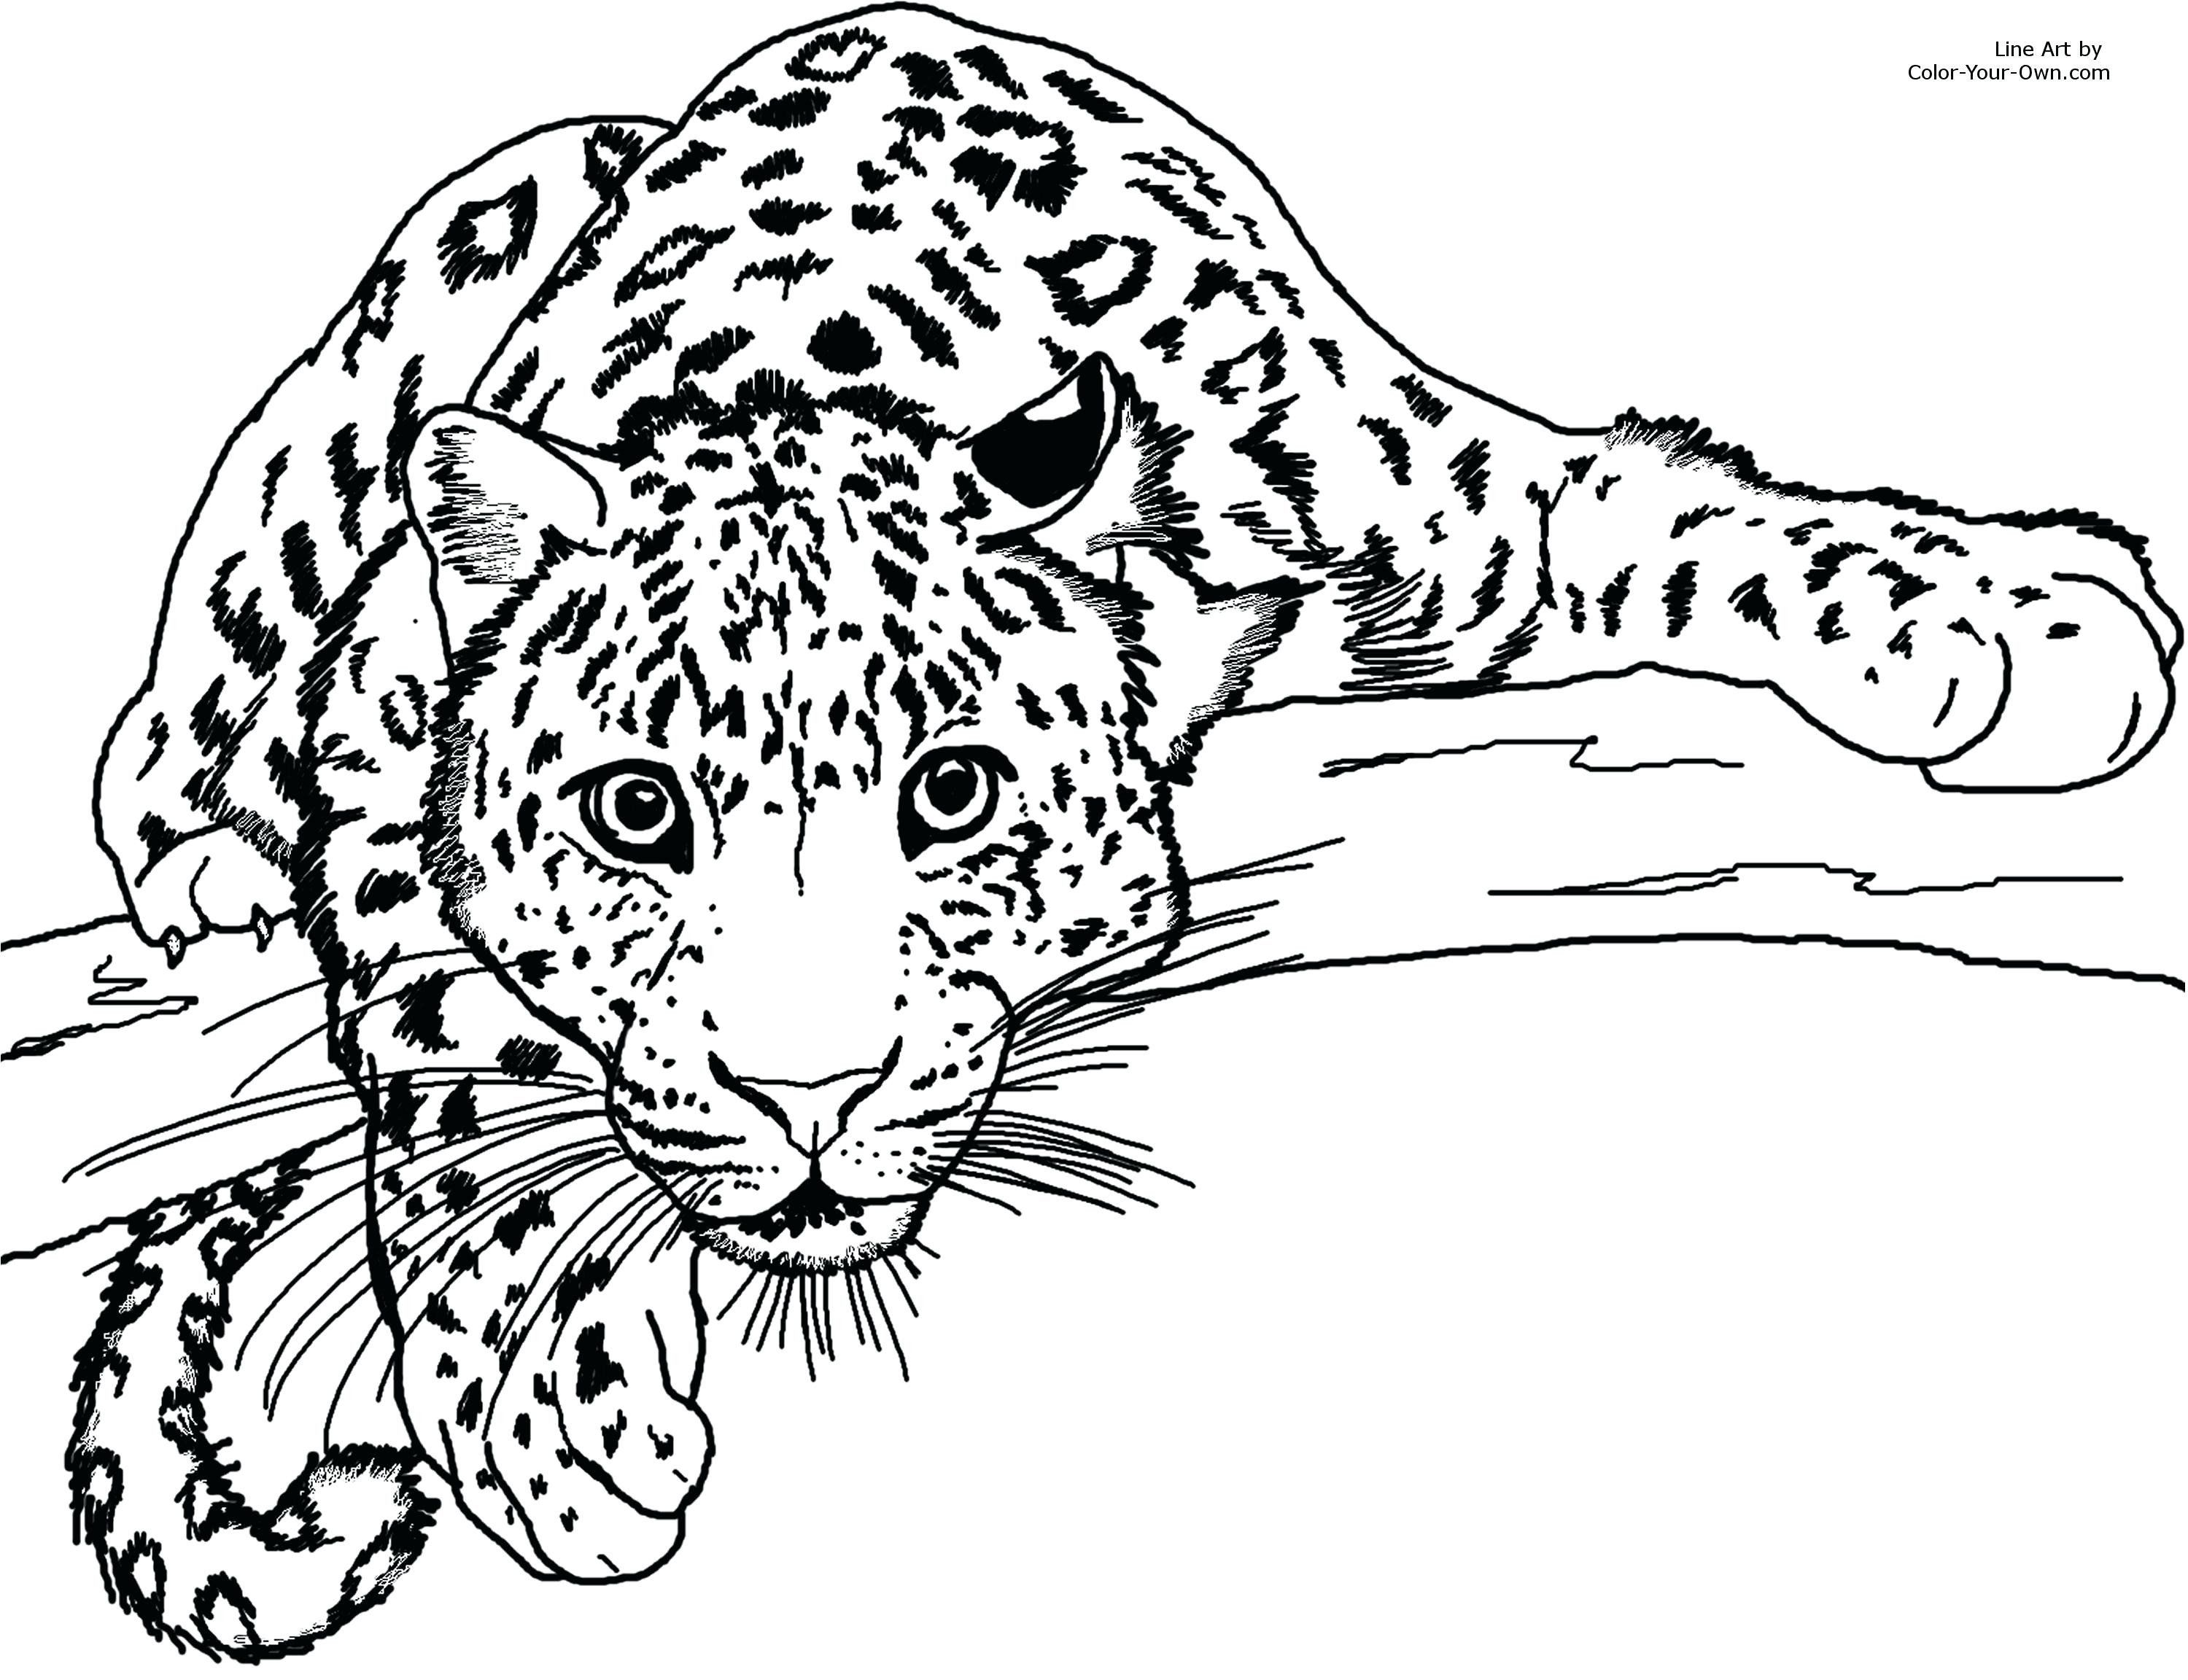 Animal Jam Coloring Pages Best Of Snow Leopard Coloring Sheet Axionsheet Animal Coloring Pages Animal Coloring Books Coloring Pictures